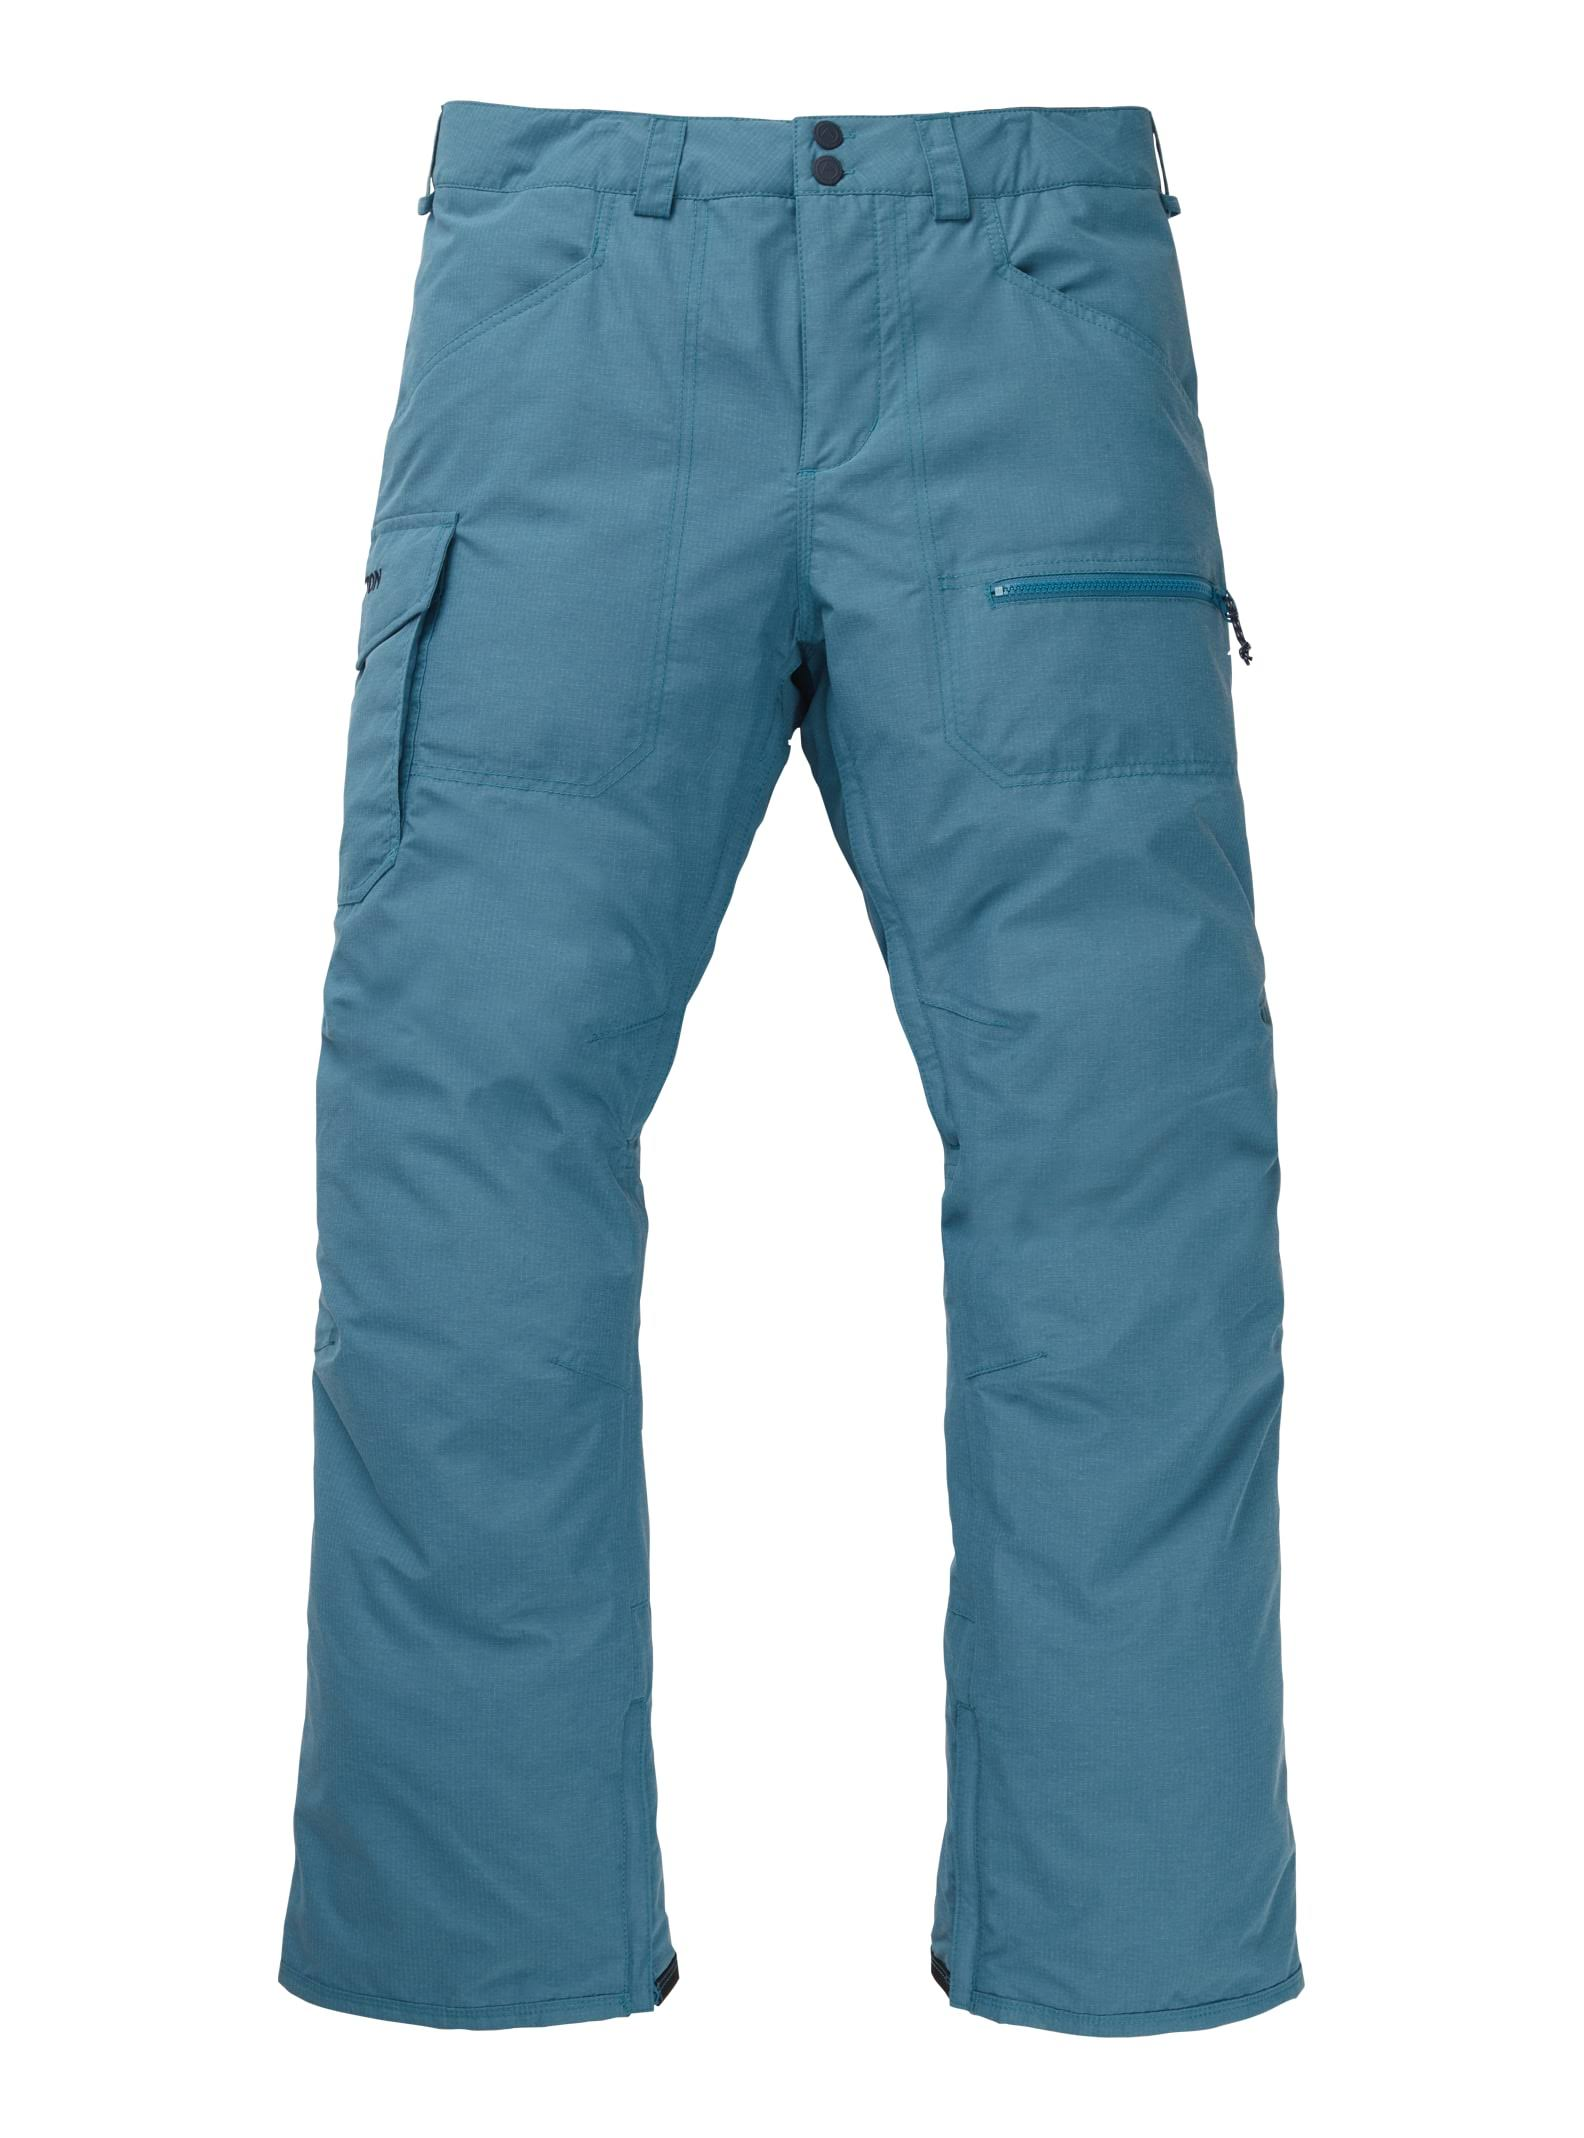 Burton Covert Pant Men's- Storm Blue Ripstop